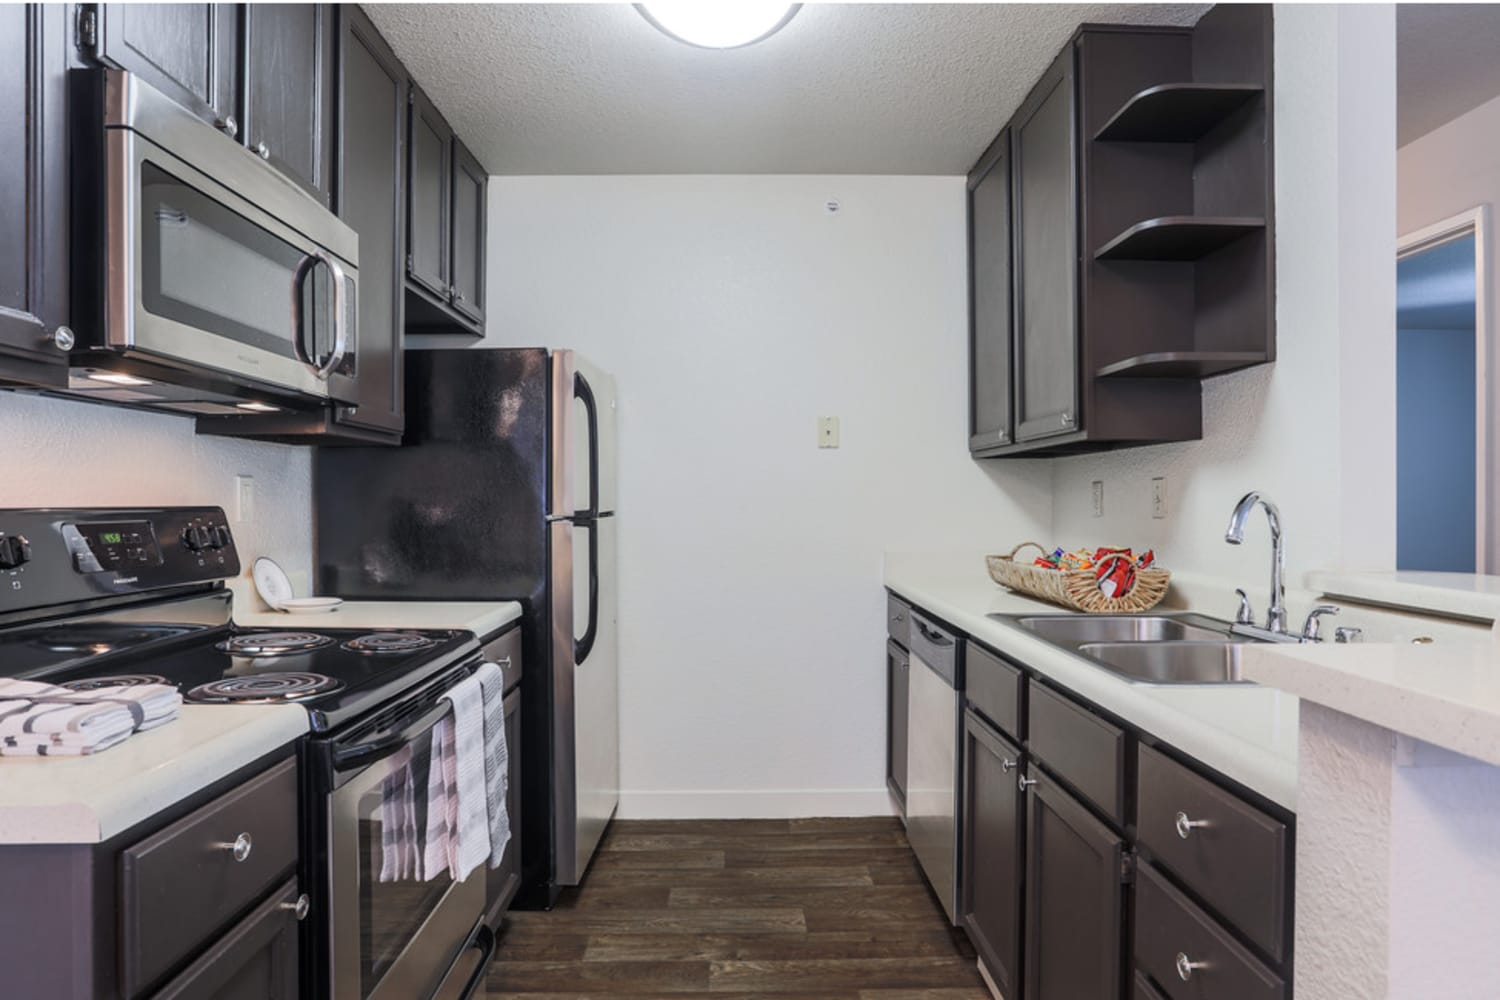 Well appointed kitchen at La Vina Apartments in Livermore, California